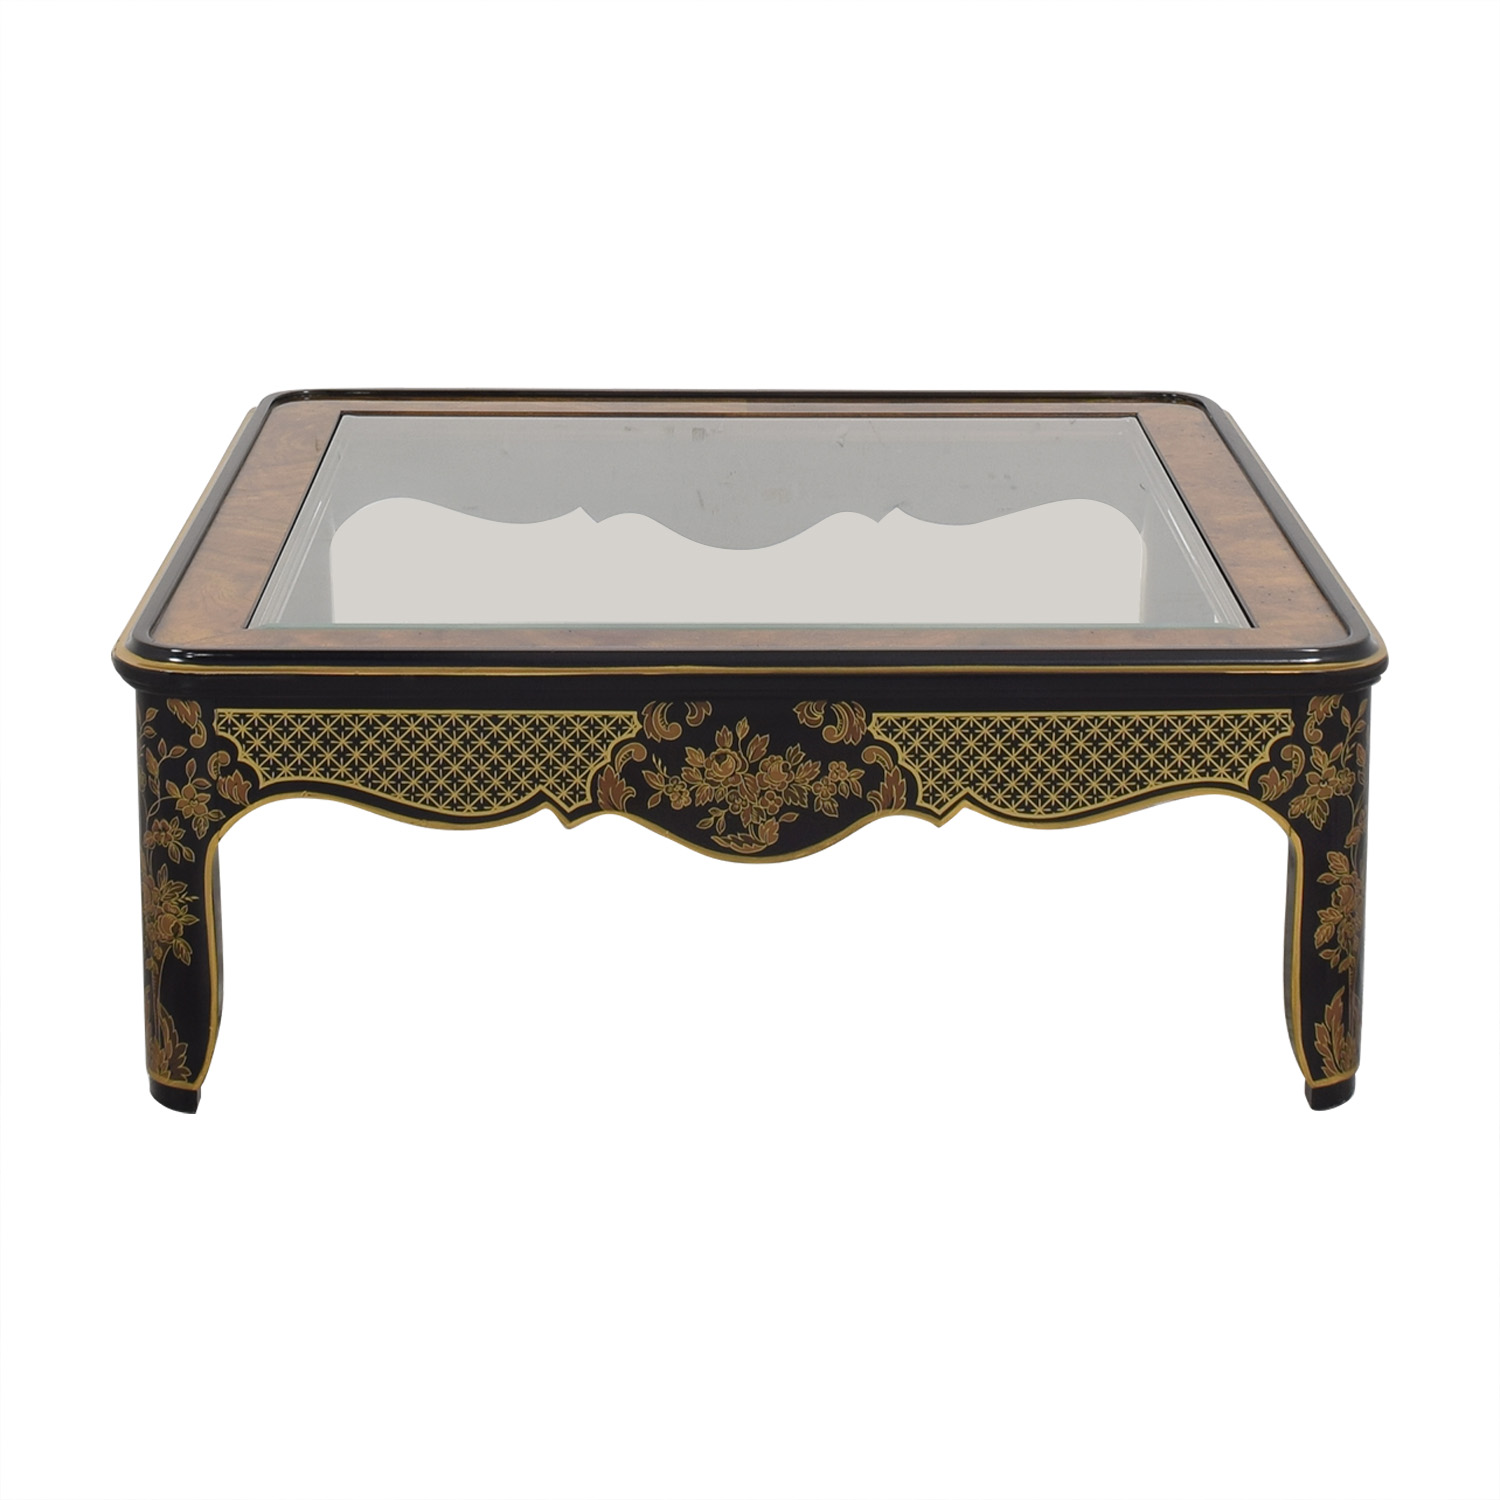 buy Macy's Glass Top Coffee Table Macy's Tables